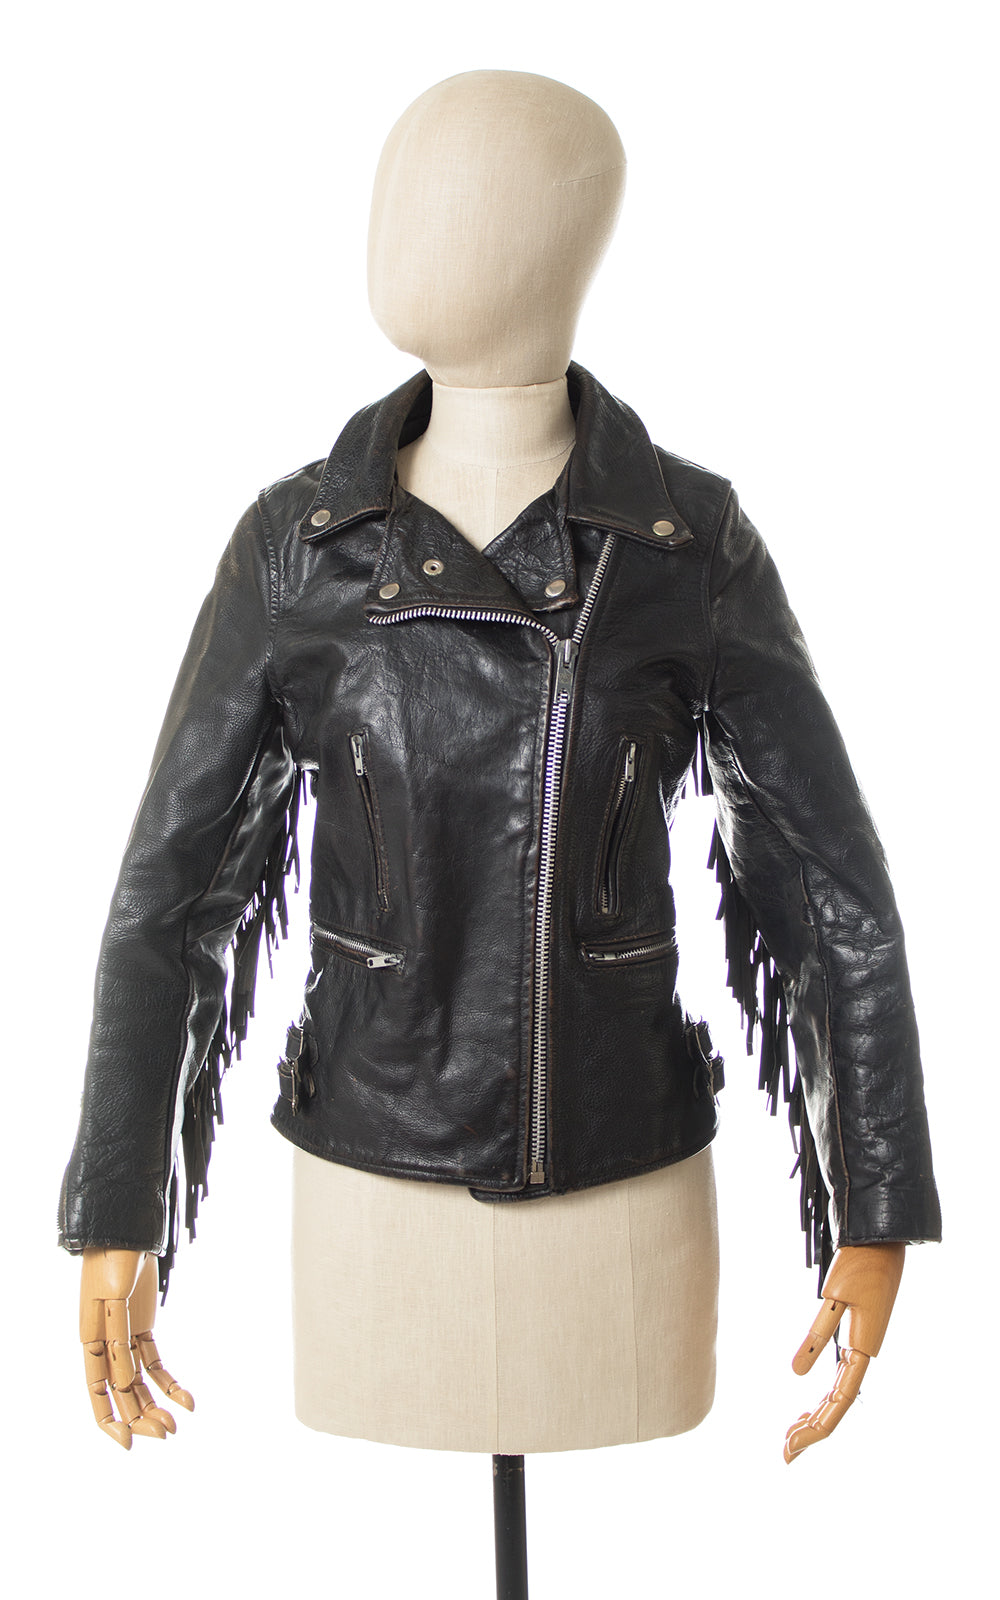 1970s Fringe Black Leather Motorcycle Jacket